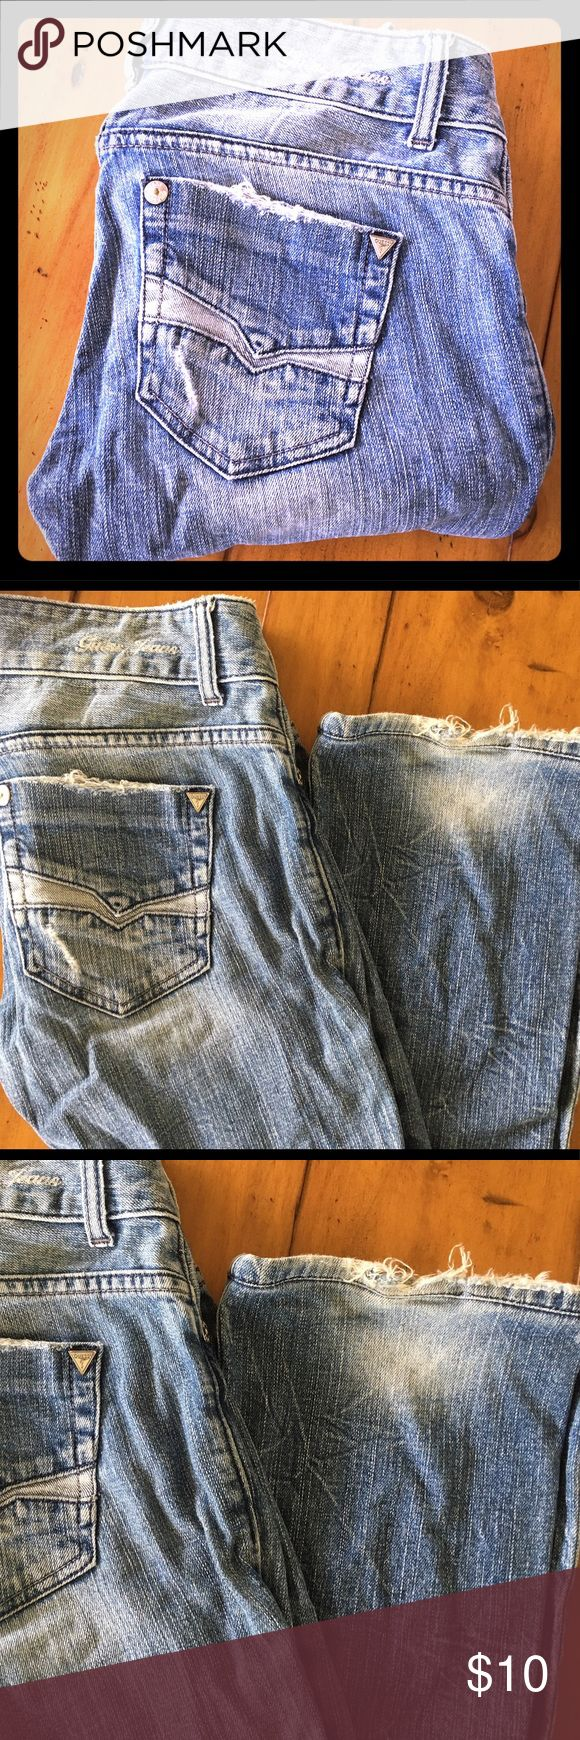 """Guess Daredevil Bootcut- well worn and well loved My absolute favorite pair of jeans pre baby! I wore these all the time. They are broken in but I know they still have a lot of life! These will be your go to pair when you just want to hangout. People pay good money to have them made to look worn but these baby's have done their time! These are the most comfortable and flattering for a petite women. I had them professionally hemmed 30"""" inseam. Guess Jeans Boot Cut"""